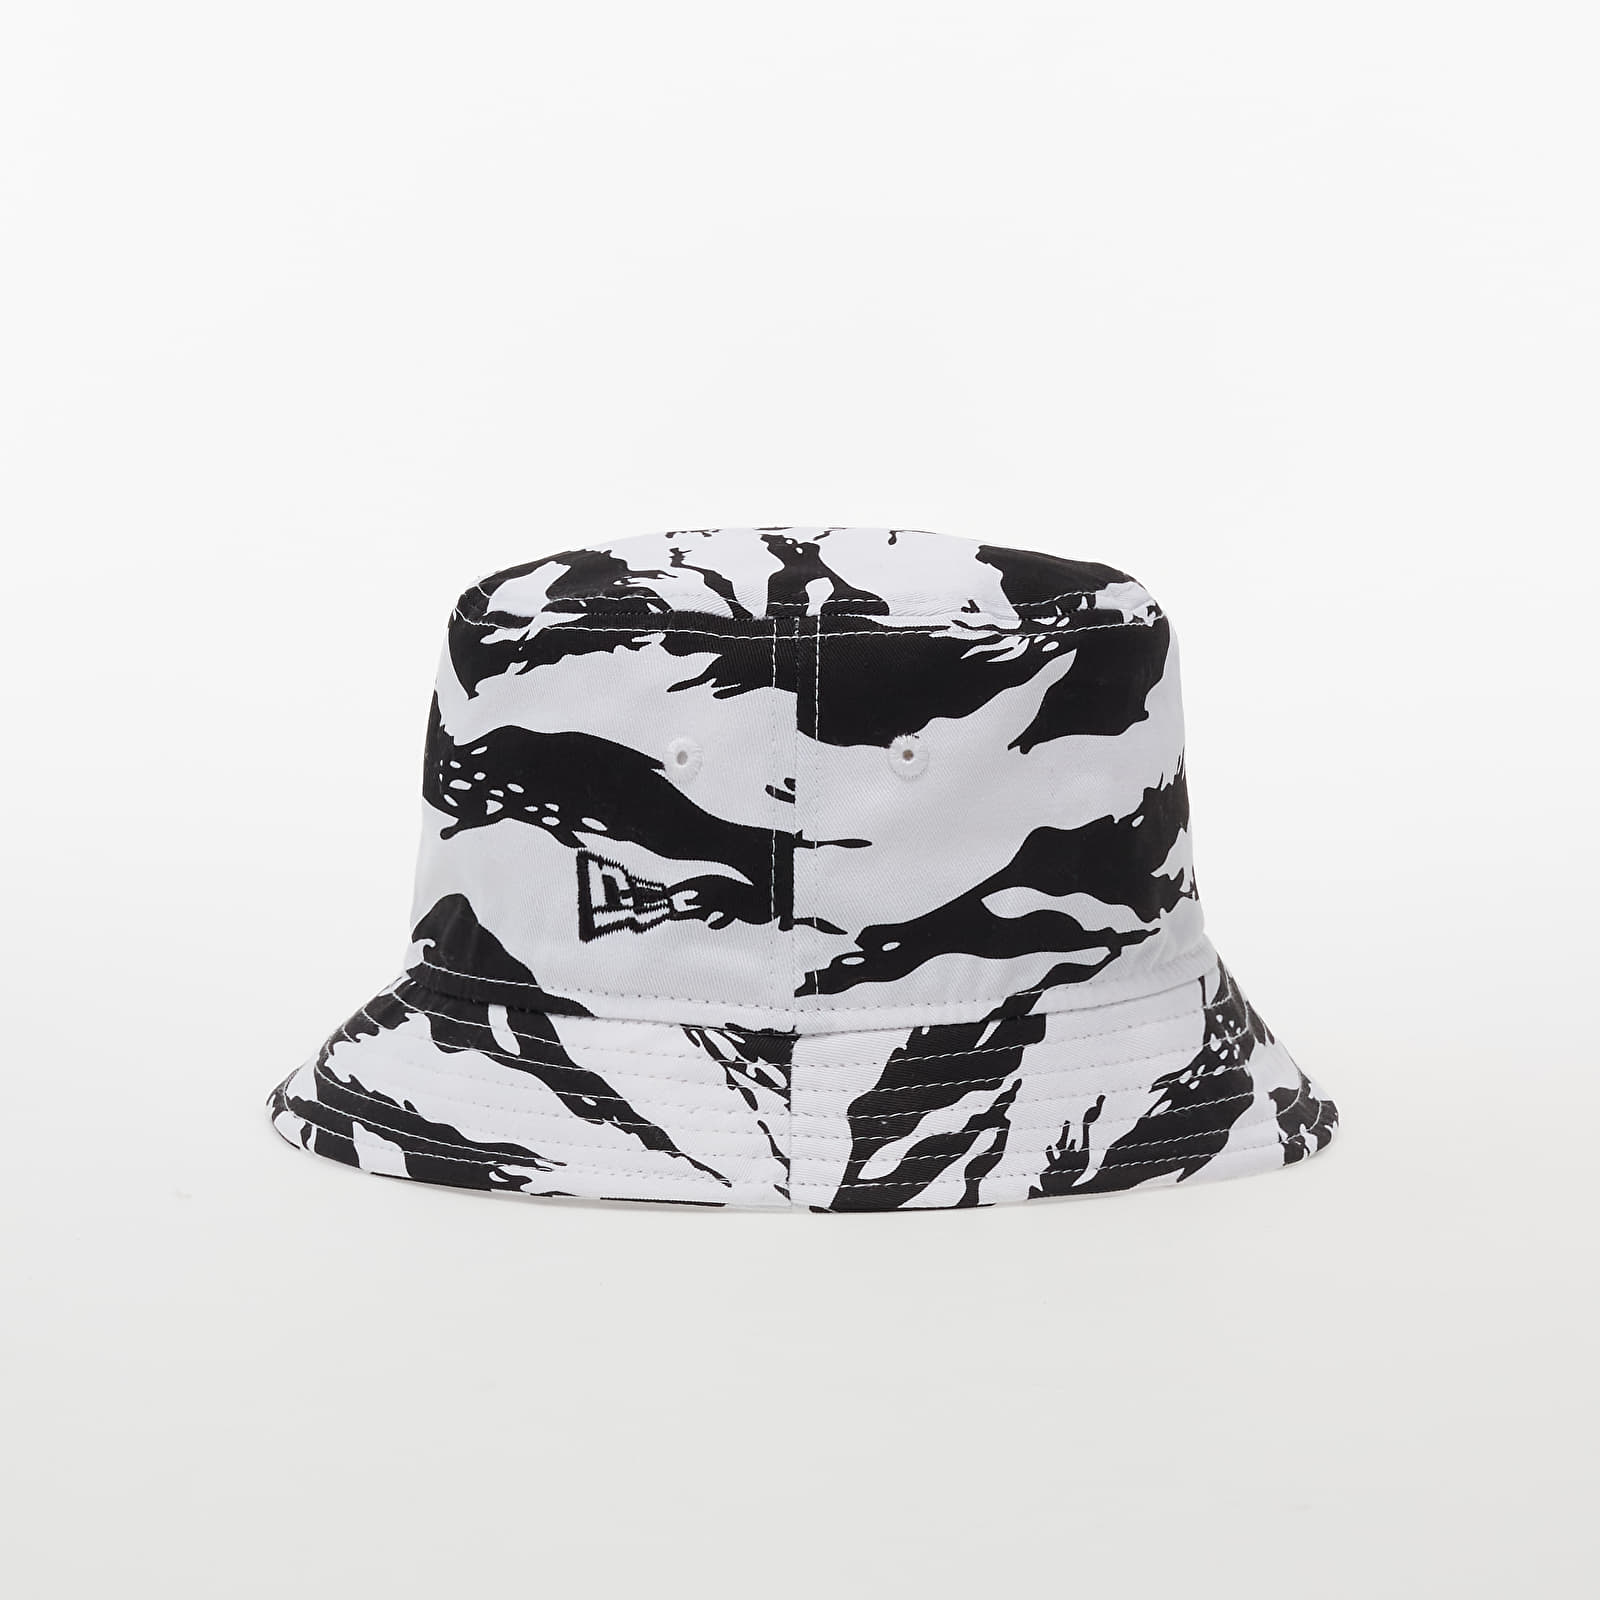 New Era Tiger Camo Bucket Hat Black/ White